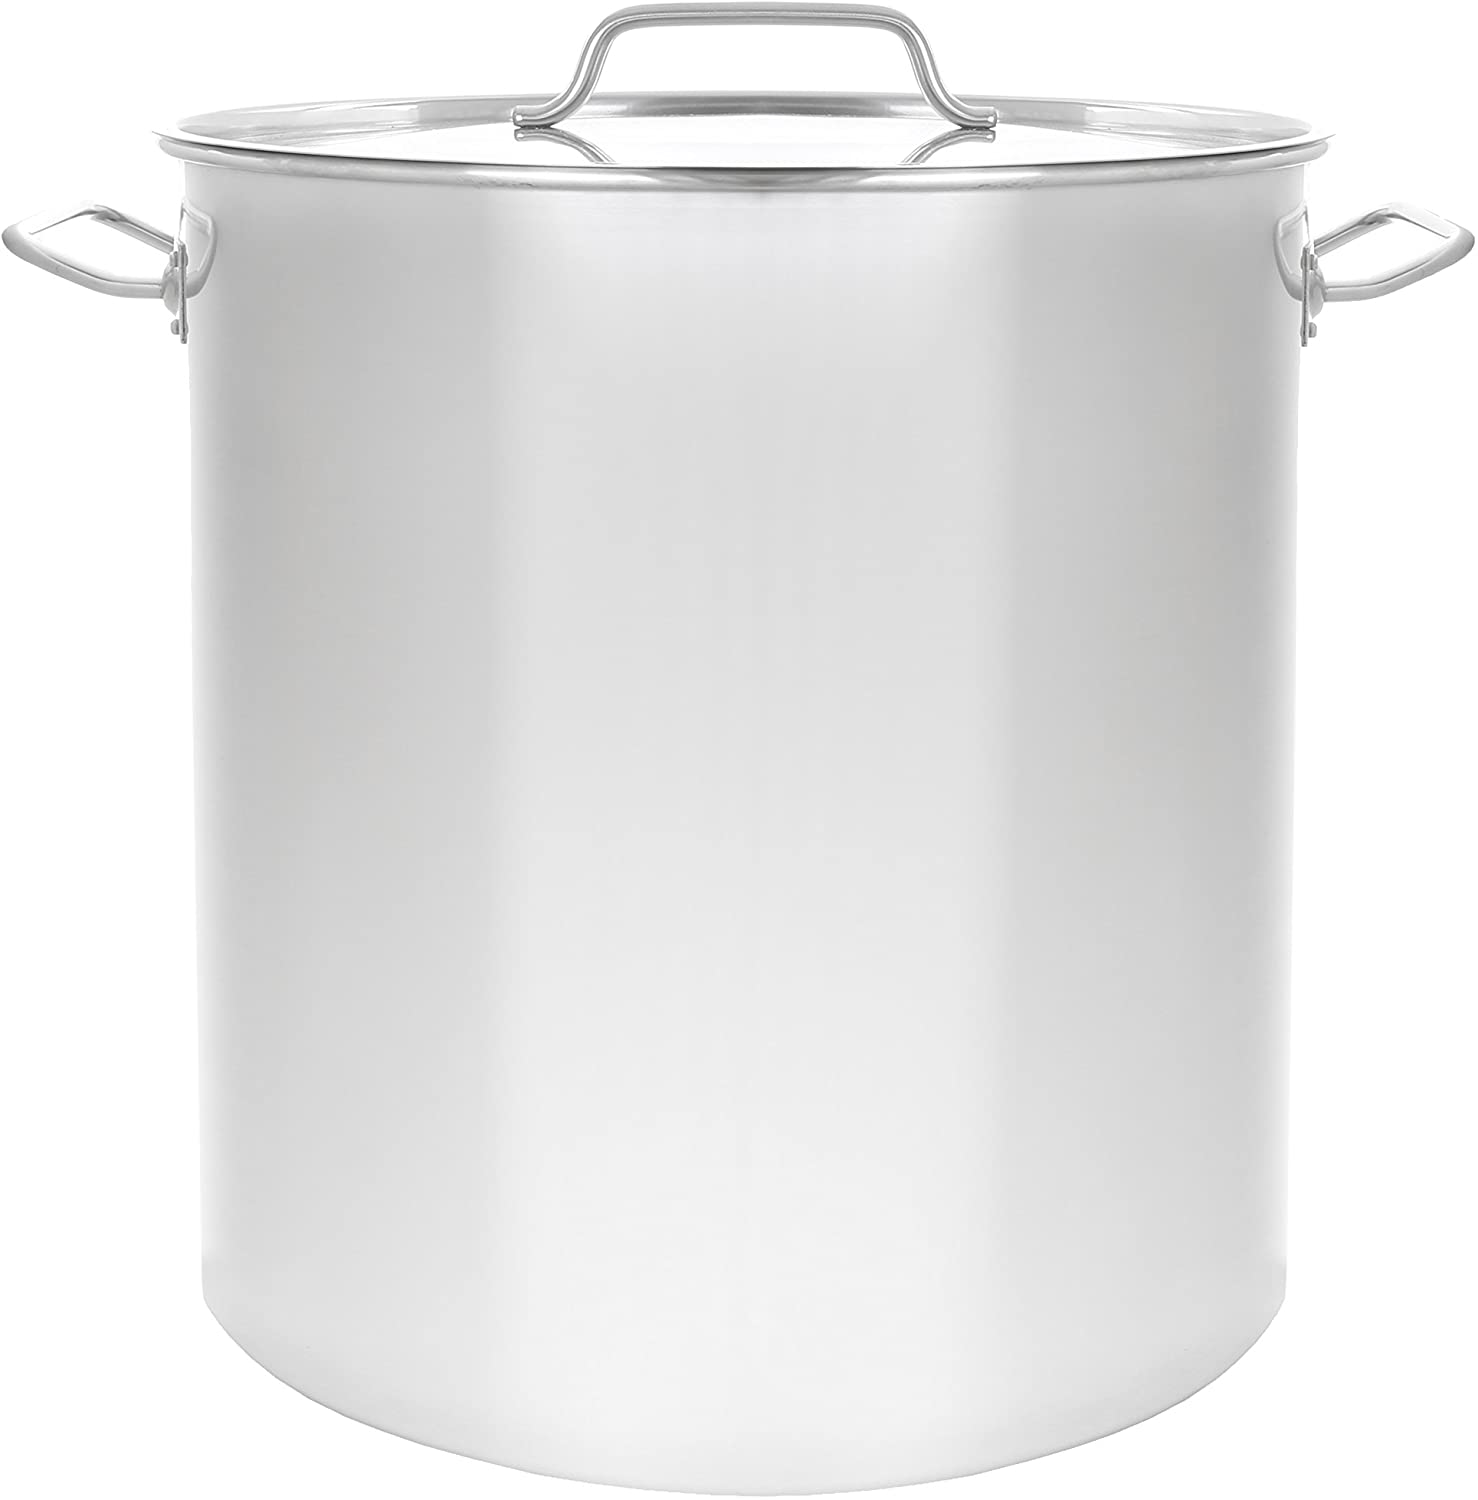 CONCORD Polished Stainless Steel Stock Pot Brewing Beer Kettle Mash Tun w/ Flat Lid (30 QT)